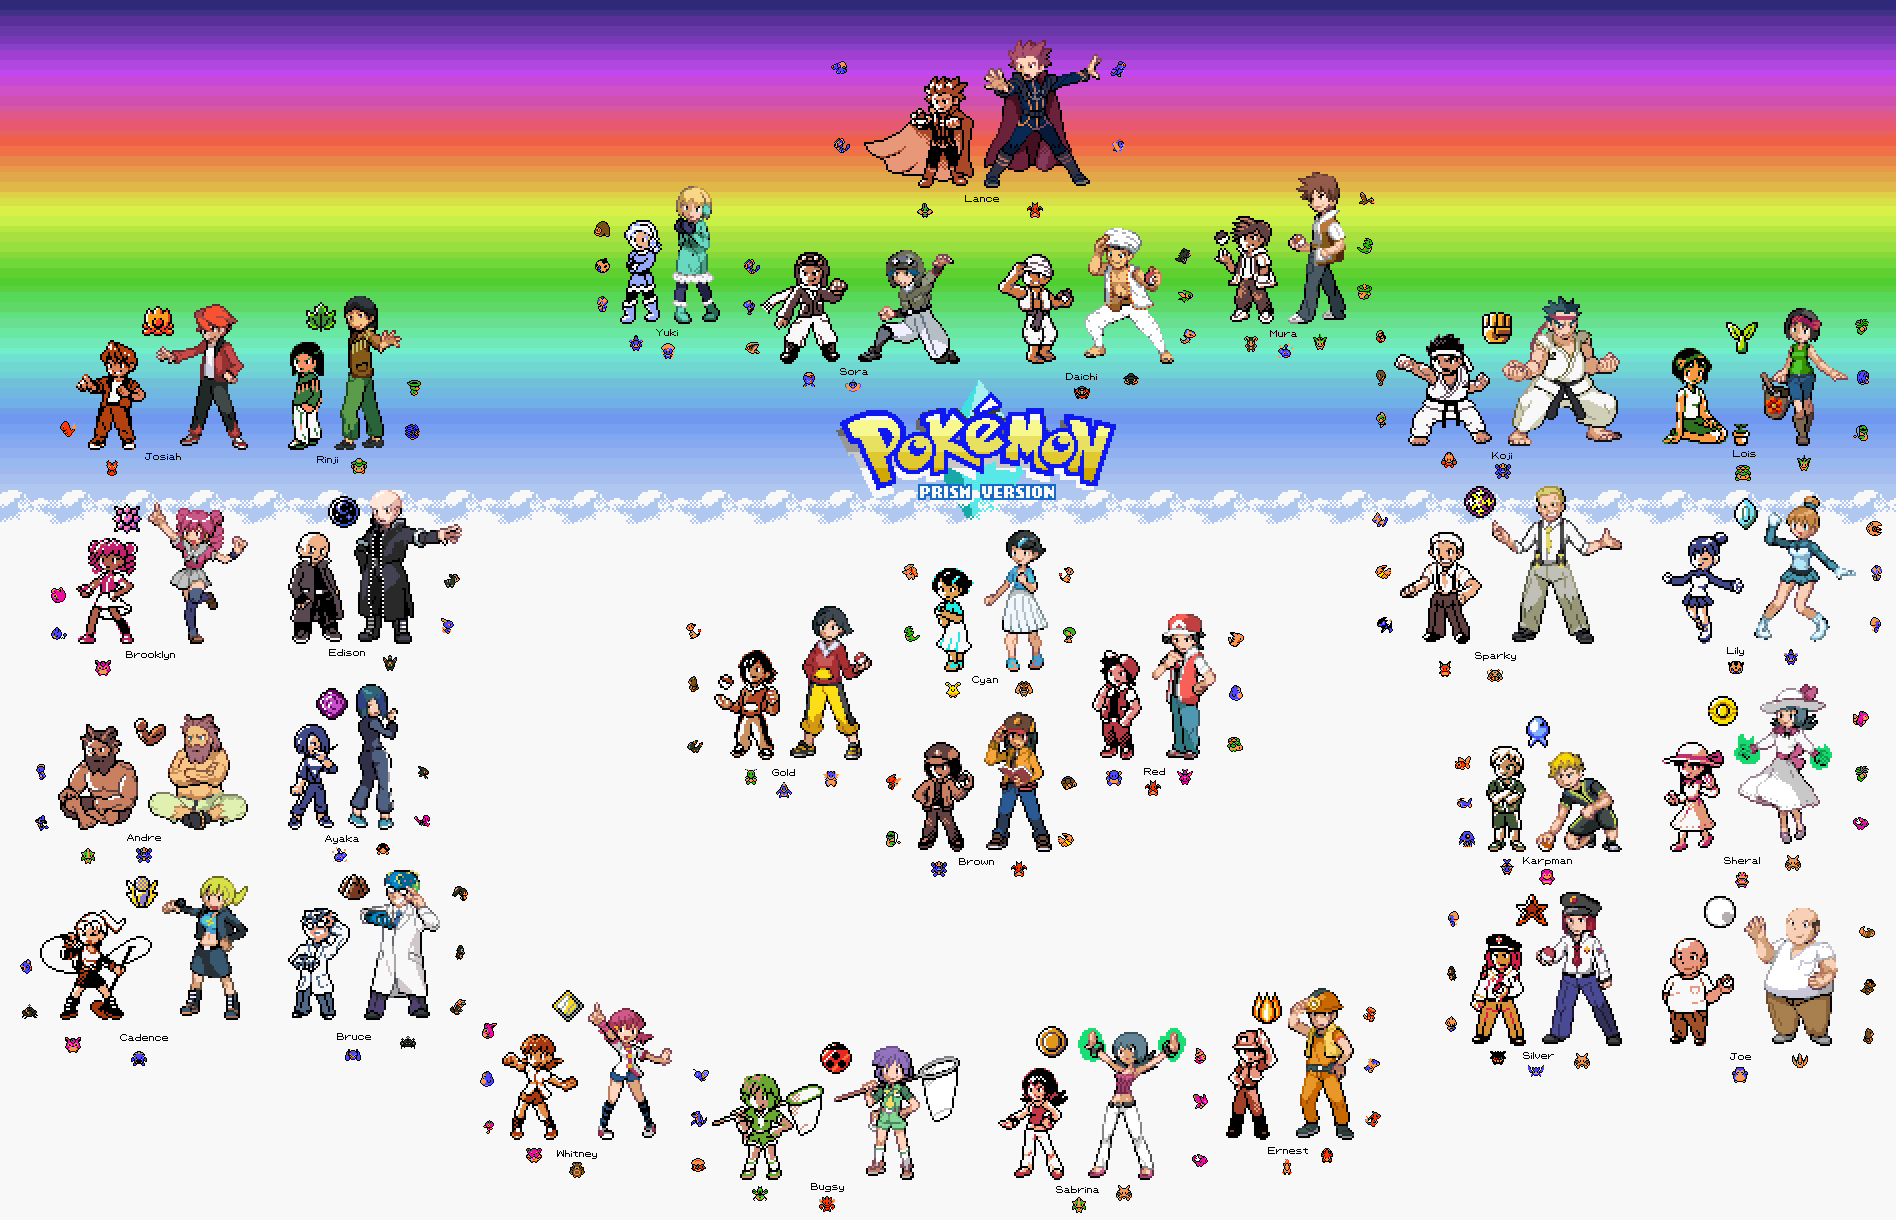 Pokemon prism final version gbc